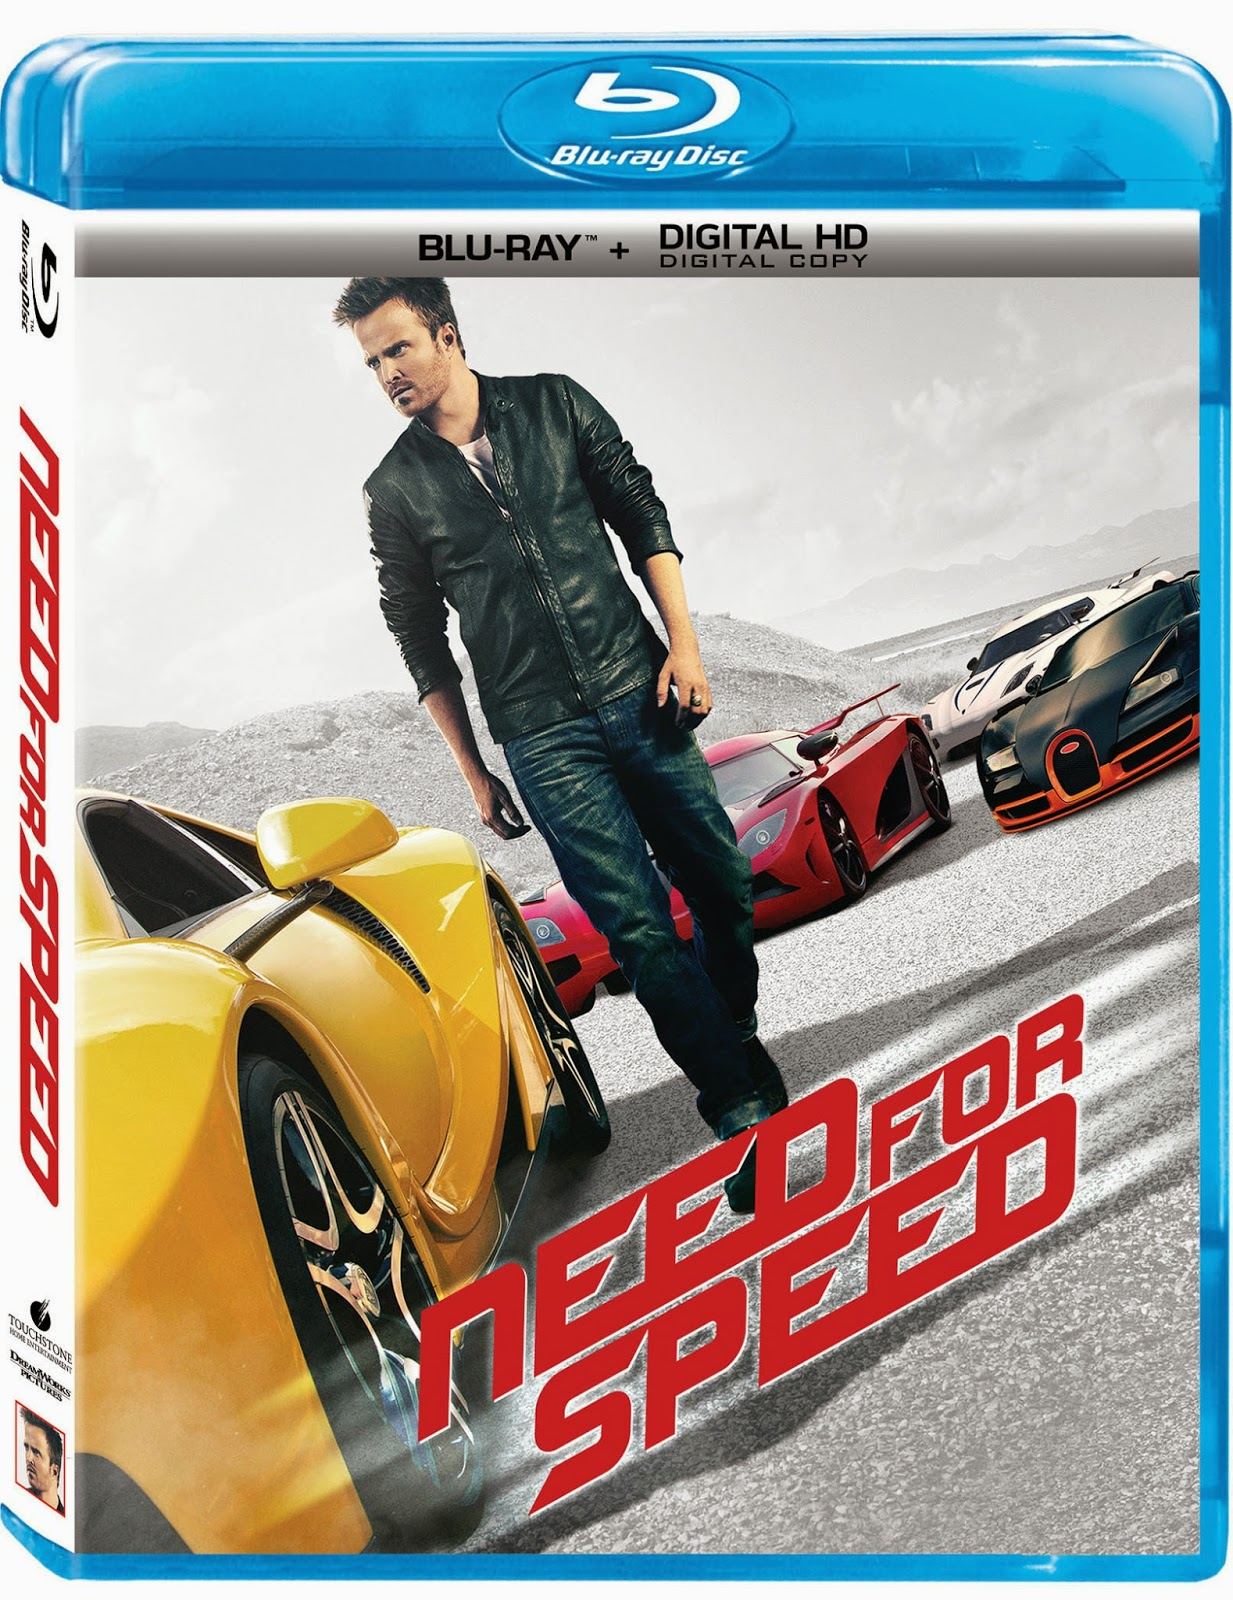 http://bigmasterdownloadsbluray.blogspot.com.br/2014/07/baixar-need-for-speed-o-filme-2014.html